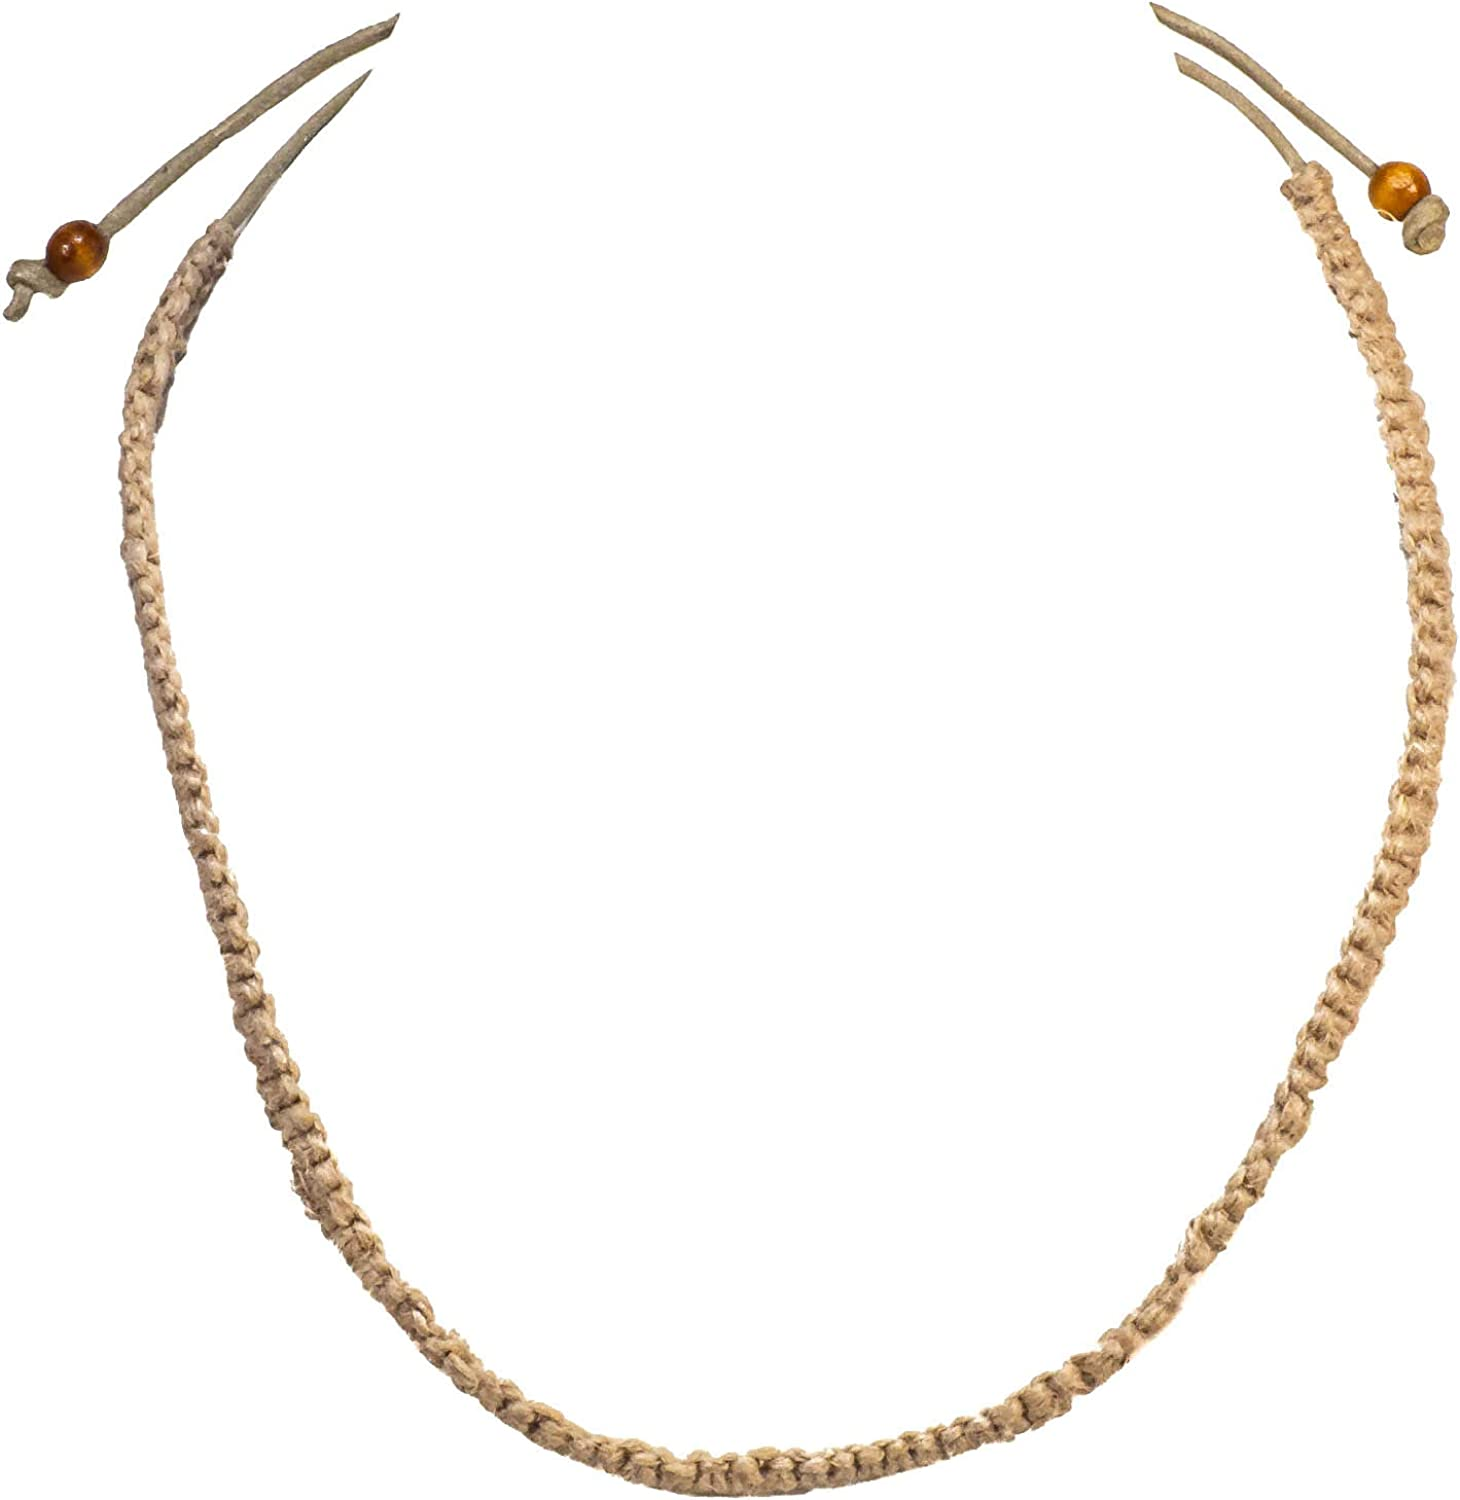 BlueRica Childrens Braided Hemp Cord Choker Necklace with Pull Tie